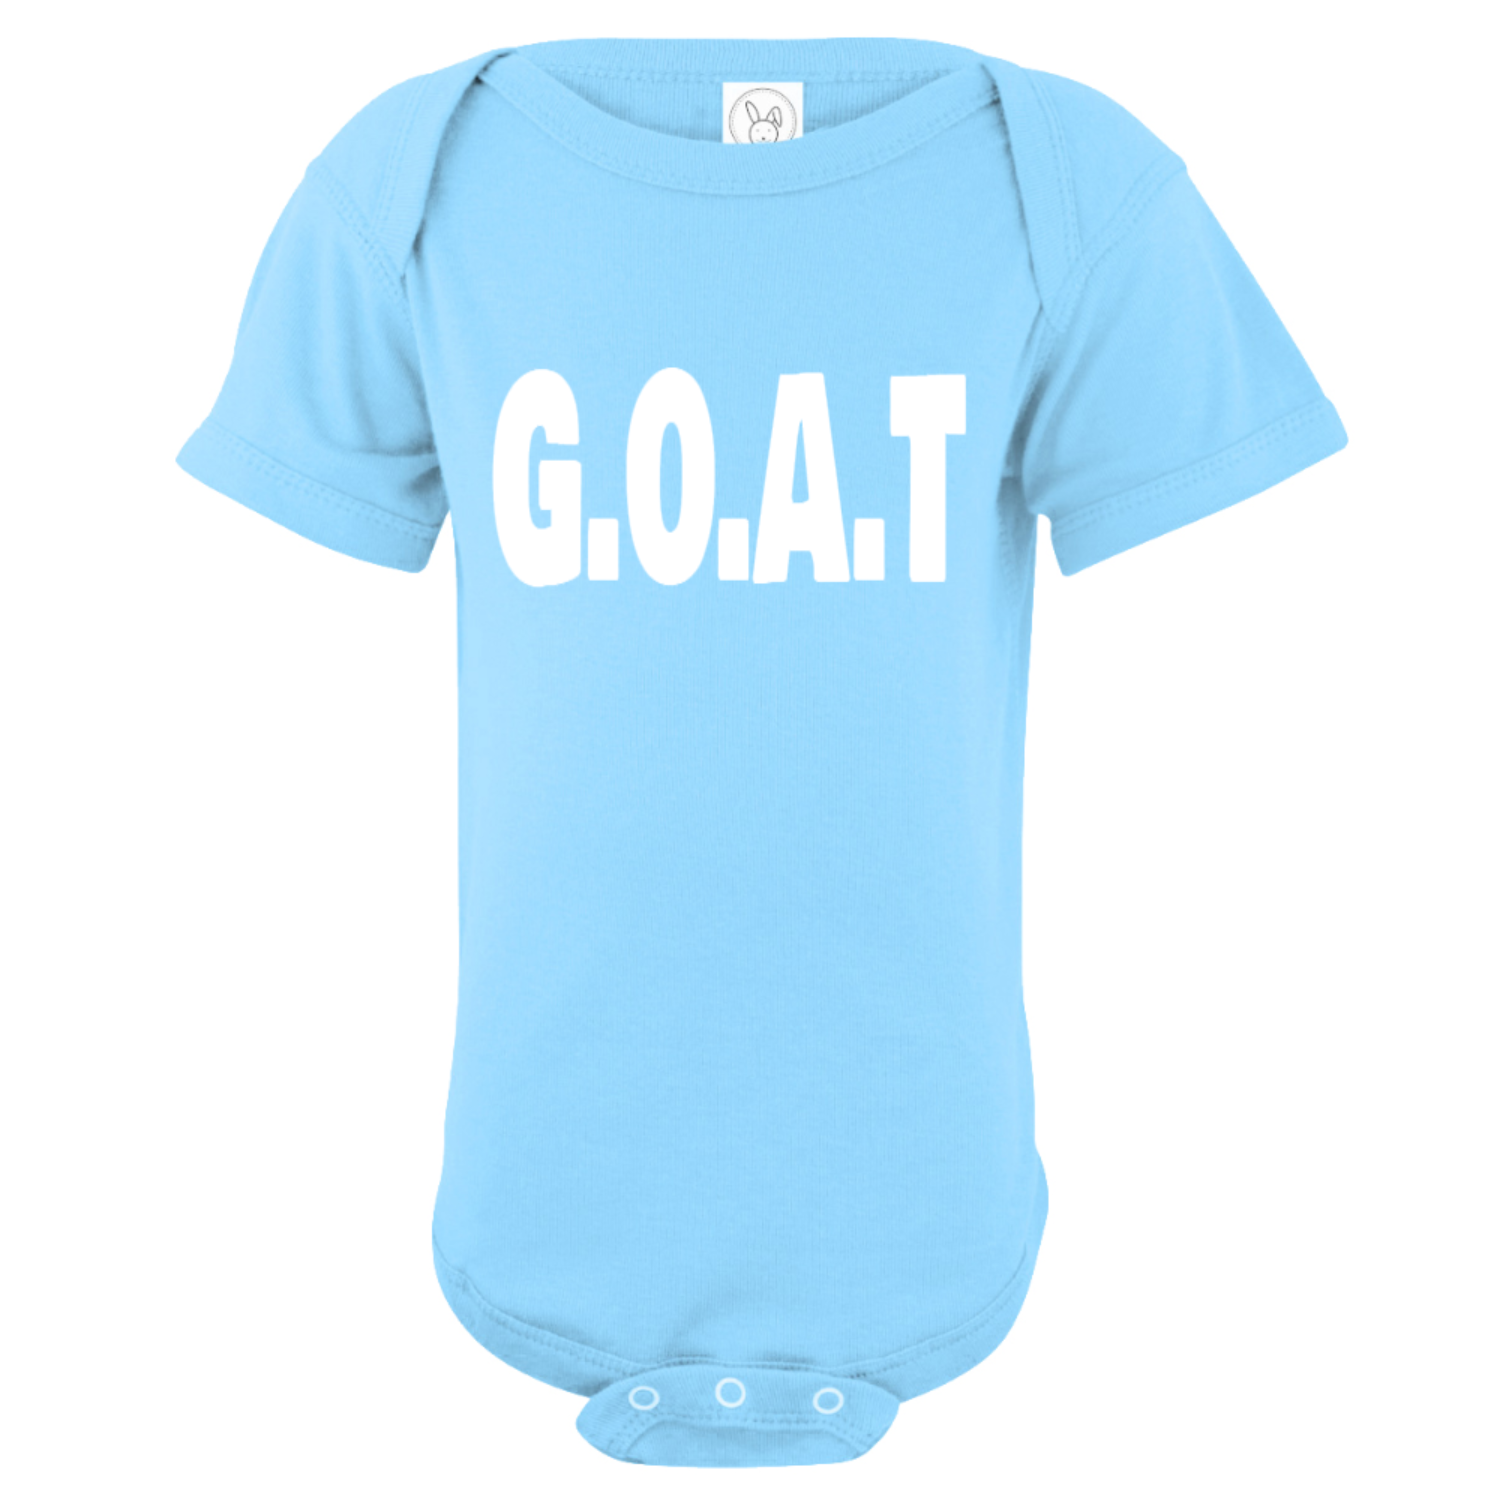 G.O.A.T Greatest Of All Time Baby Bodysuit Light Blue